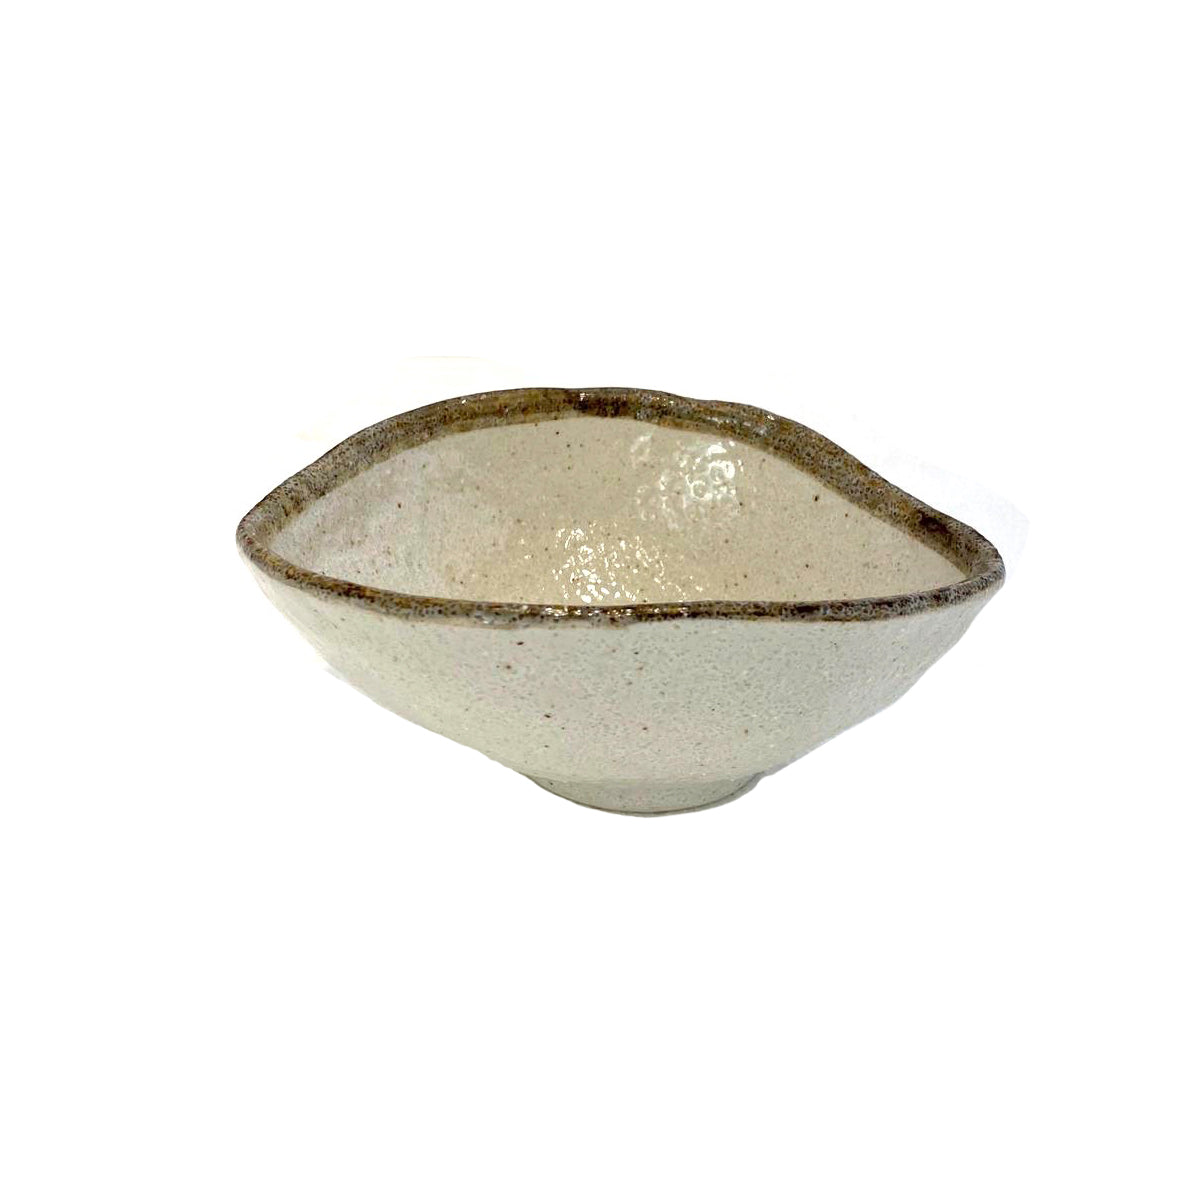 Shirokaratsu Oval Bowl Small